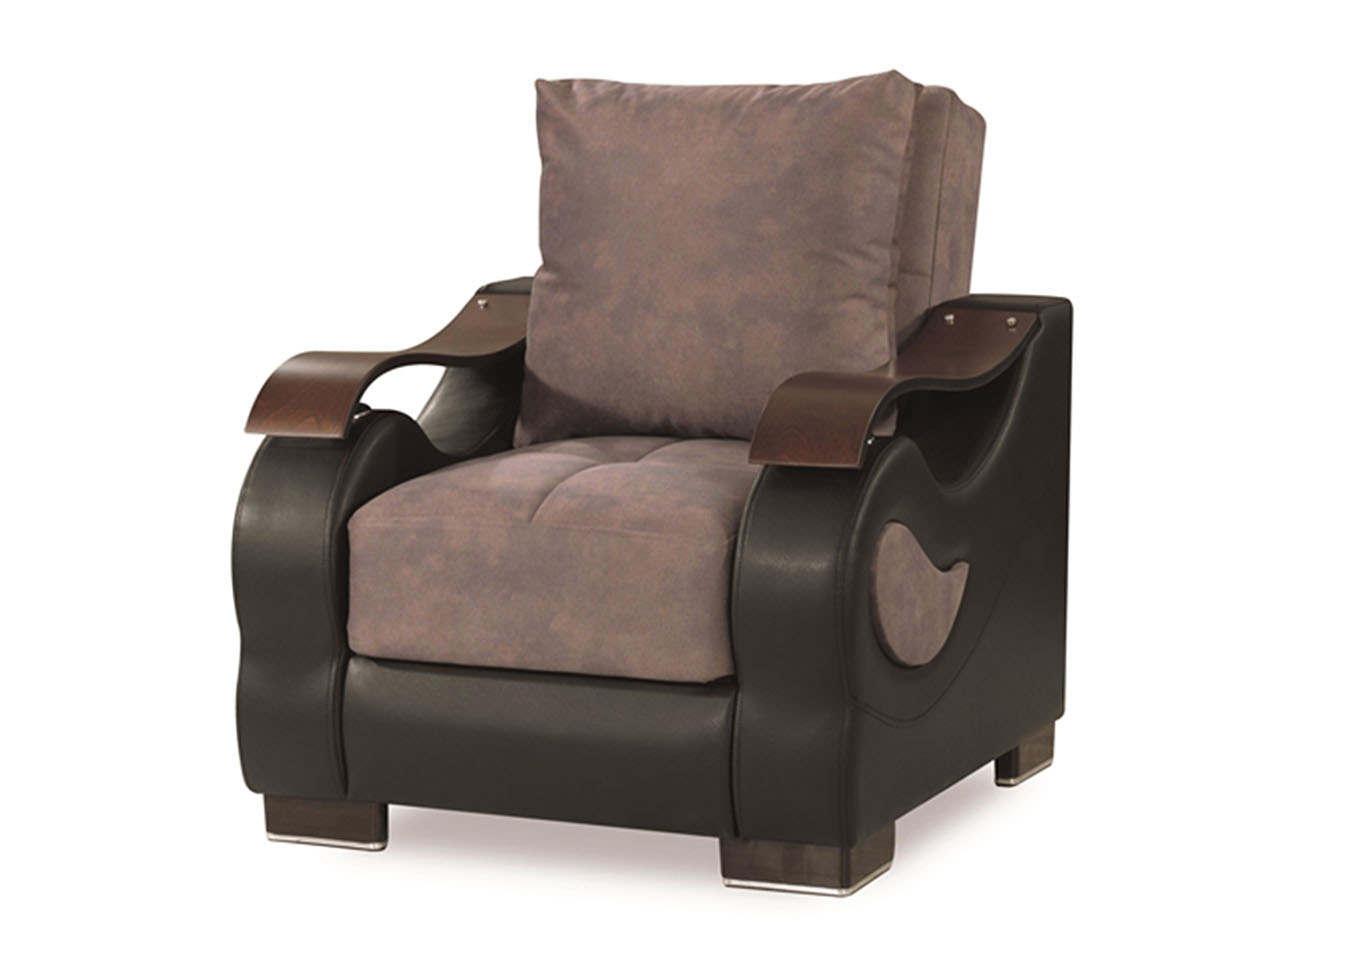 Metroplex Gray Microsuede Chair,CasaMode Functional Furniture